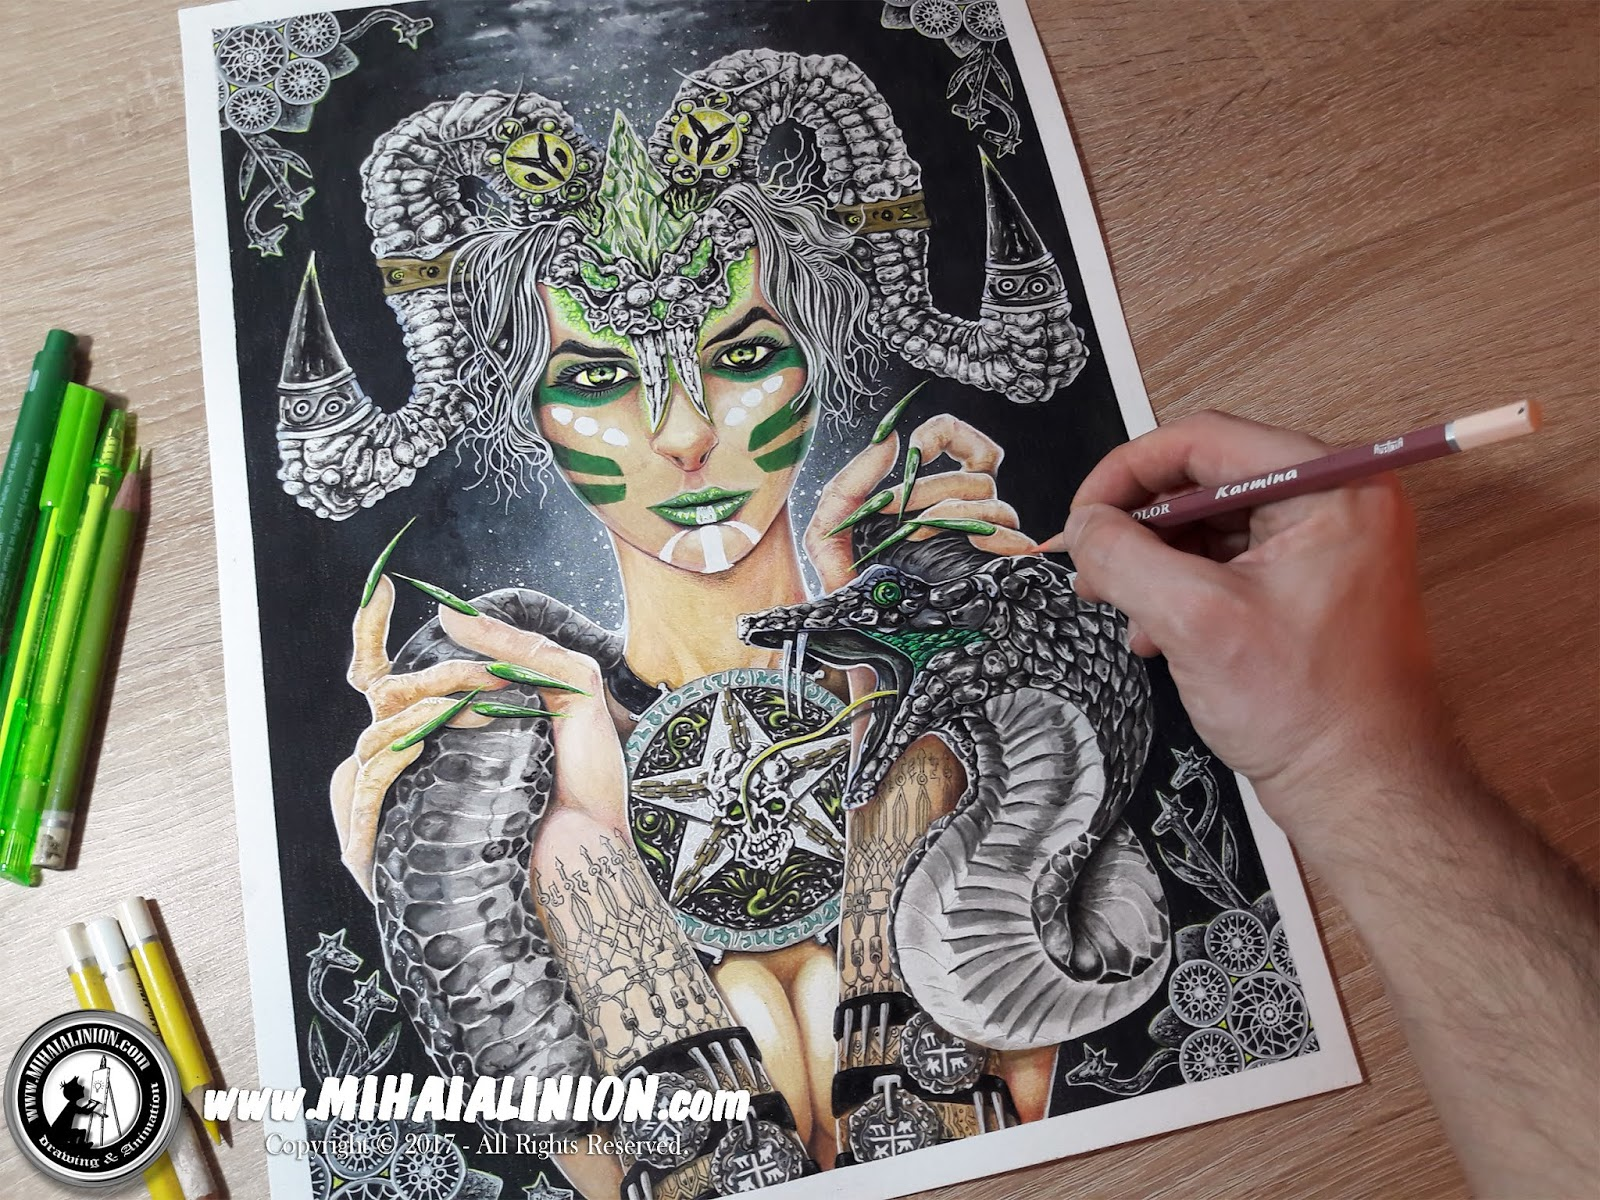 Drawing Snake Lady, Drawing girl, Drawing lady with horns, snake, Drawing woman, painting horror art, classic art, painting dark art, ancient egyptian deity, How to draw cats, cat pencil drawing, dark fantasy art snake, mithology illustration, pentagram, snake god, youtube artist, hot sexy girl snake, MAI Comics, Mihai Alin Ion, art by mihai alin ion, how to draw, artselfie, drawing ideas, free drawing lessons, drawing tutorial, art, drawing apep, dessin, disegno, dibujo, drawing, illustration, painting, design, realistic 3d art, coloured pencils, www.mihaialinion.com, 2017, pencil drawing, tempera, acrilics paint, marker, gouache painting, mixed media, comics, comic book, caricature, portrait, cum sa desenezi, caricaturi mihai alin ion, caricaturi si portrete  la comanda, eveniment caricaturi, caricaturi la nunta, caricaturi la botez, caricaturi la majorat, desene pe pereti, desene pentru copii, ilustratie carte, benzi desenate, caricaturi, portrete, comanda caricaturi